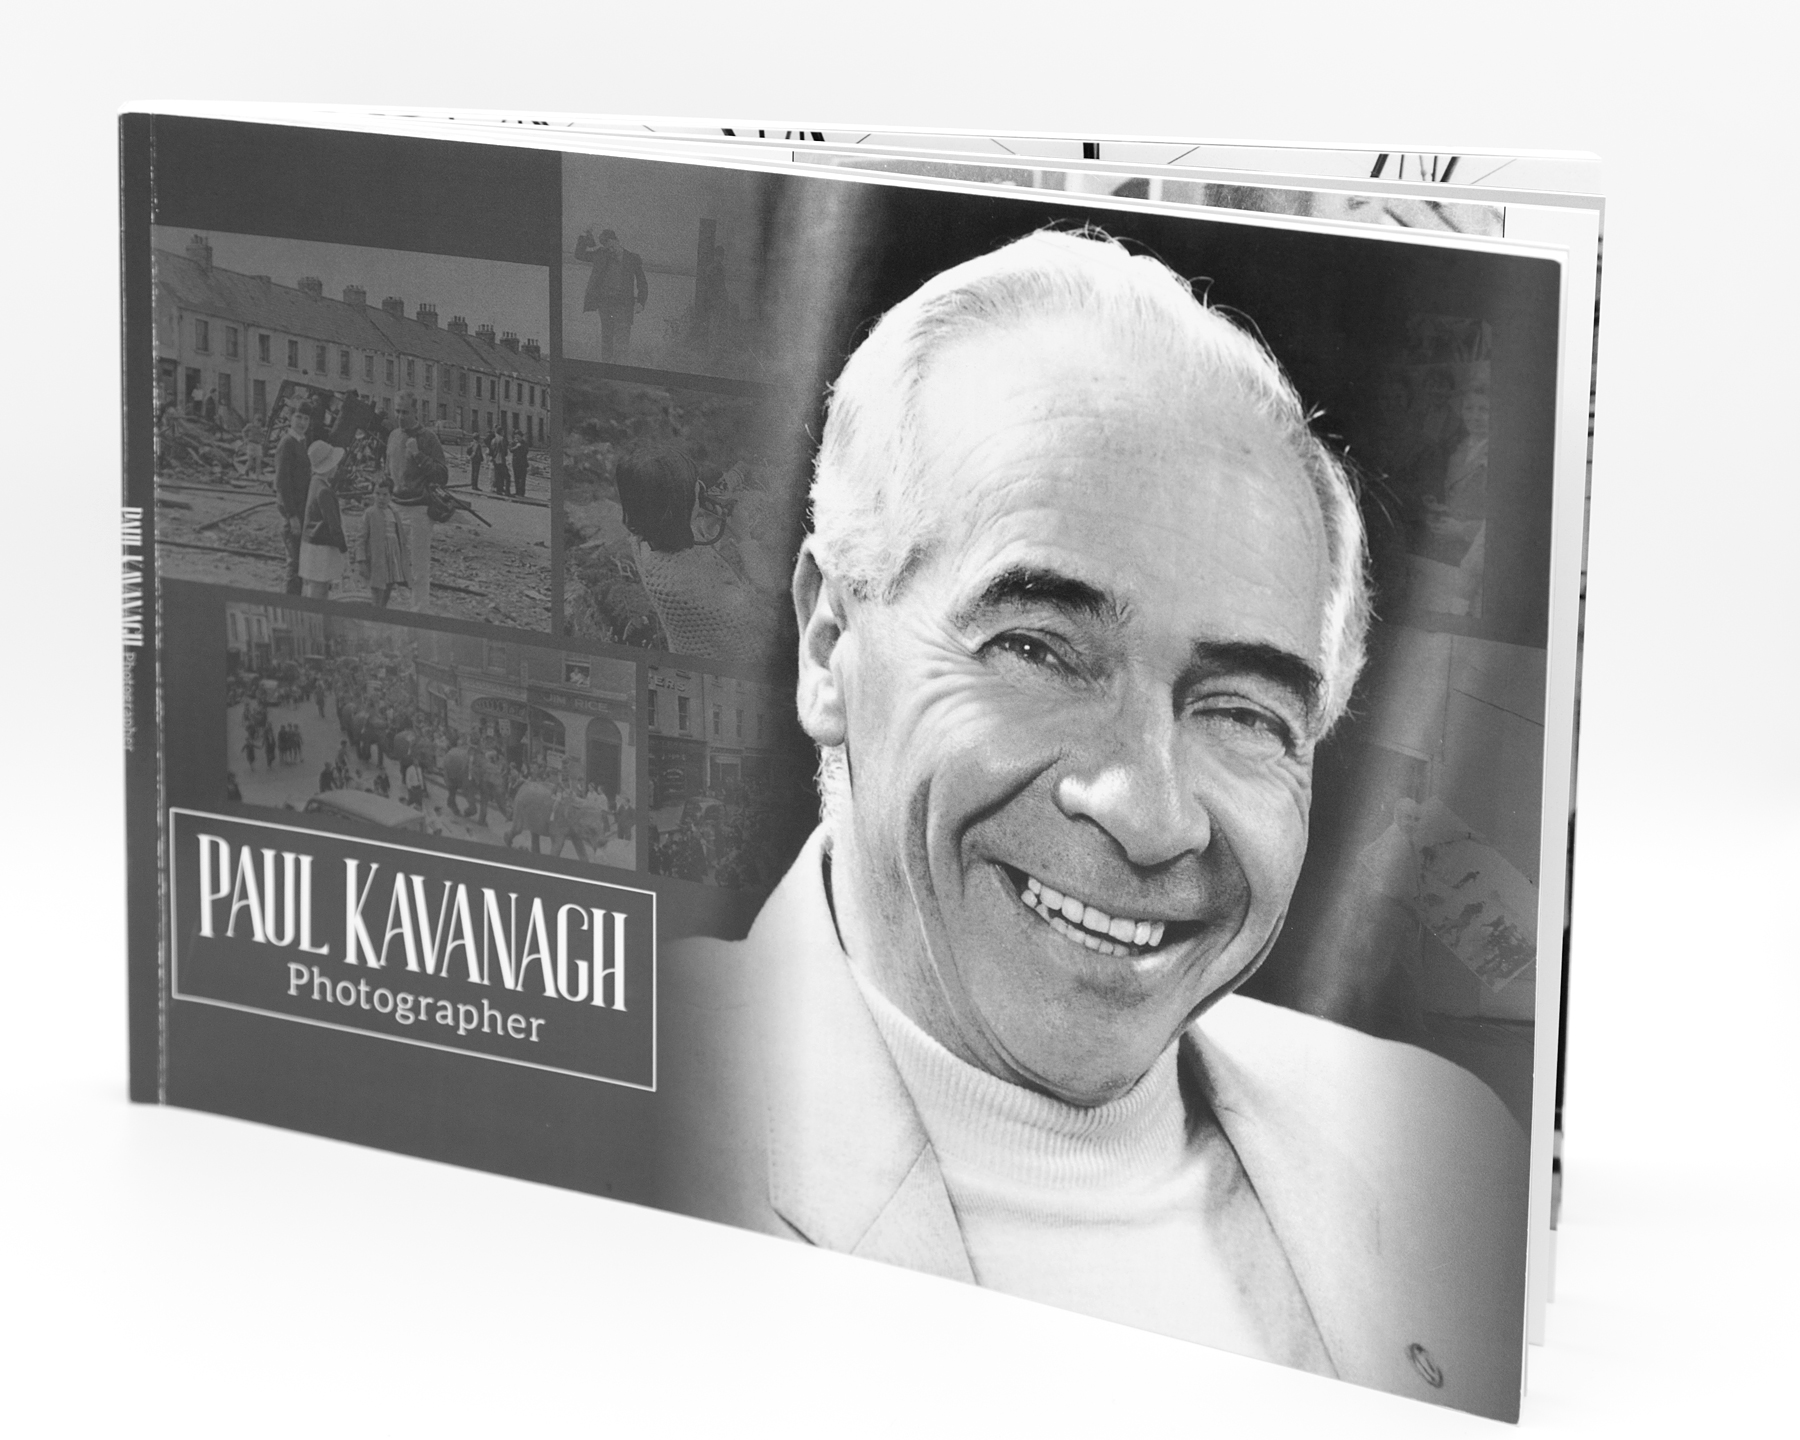 The Paul Kavanagh Book